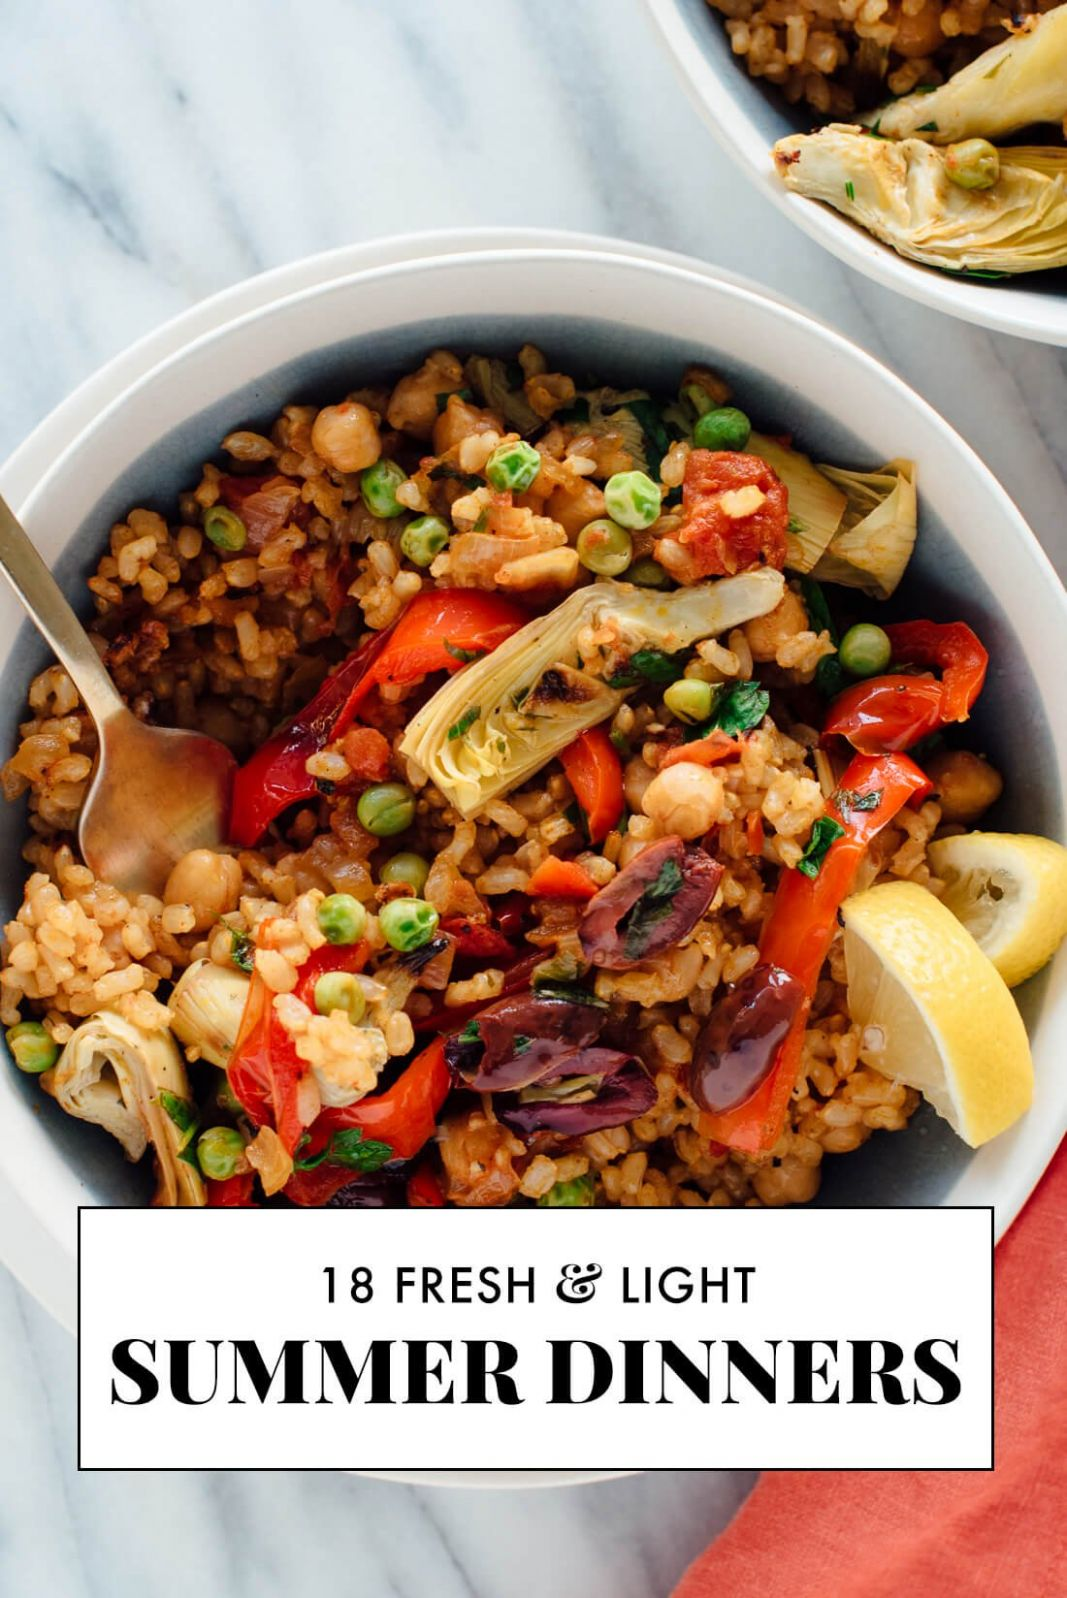 12 Light Summer Dinner Recipes - Cookie and Kate - Summer Recipes Main Course